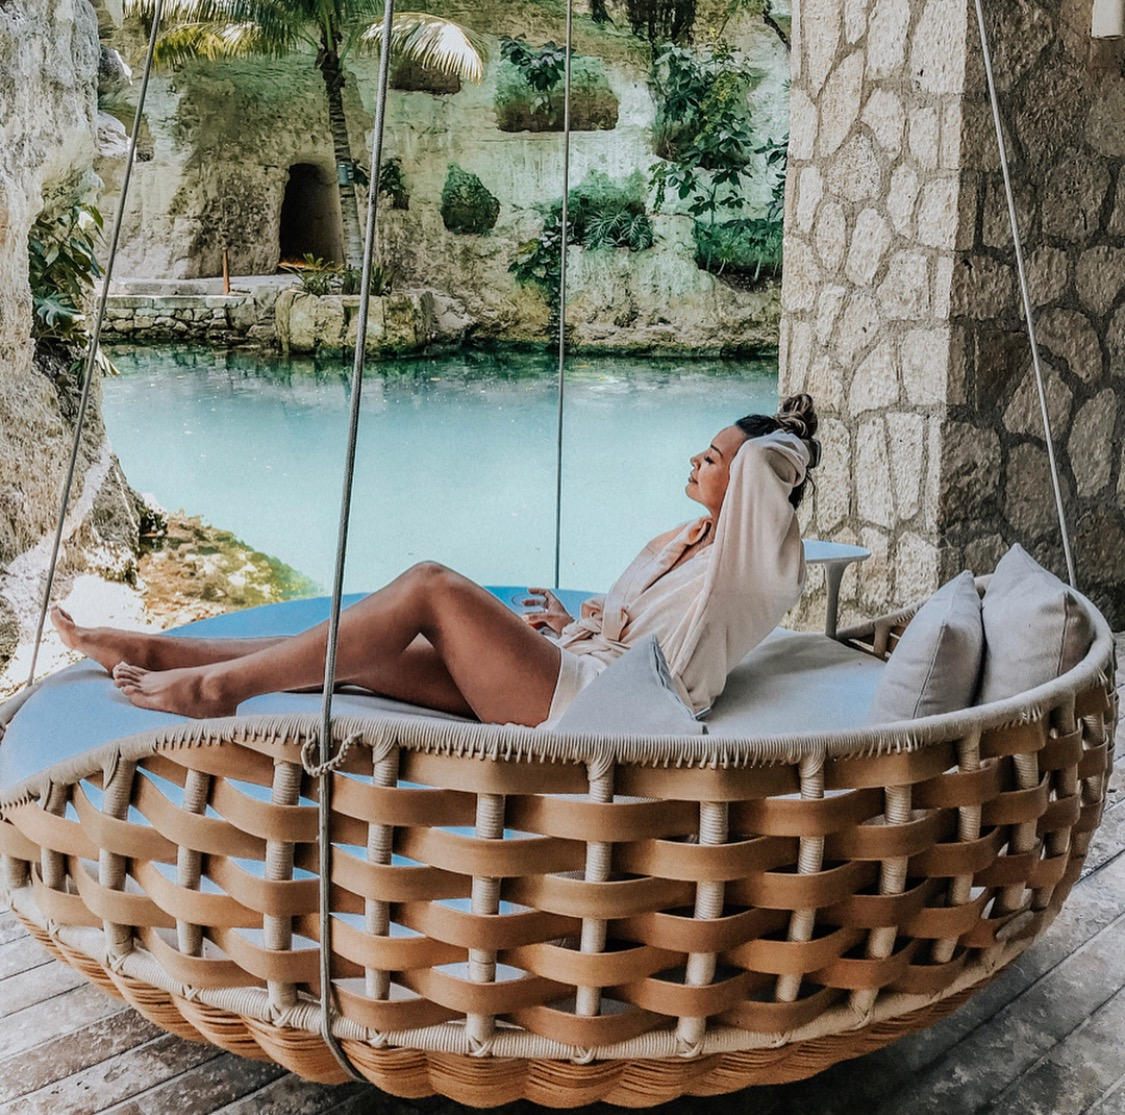 Hotel Xcaret: Mexicos majestic resort